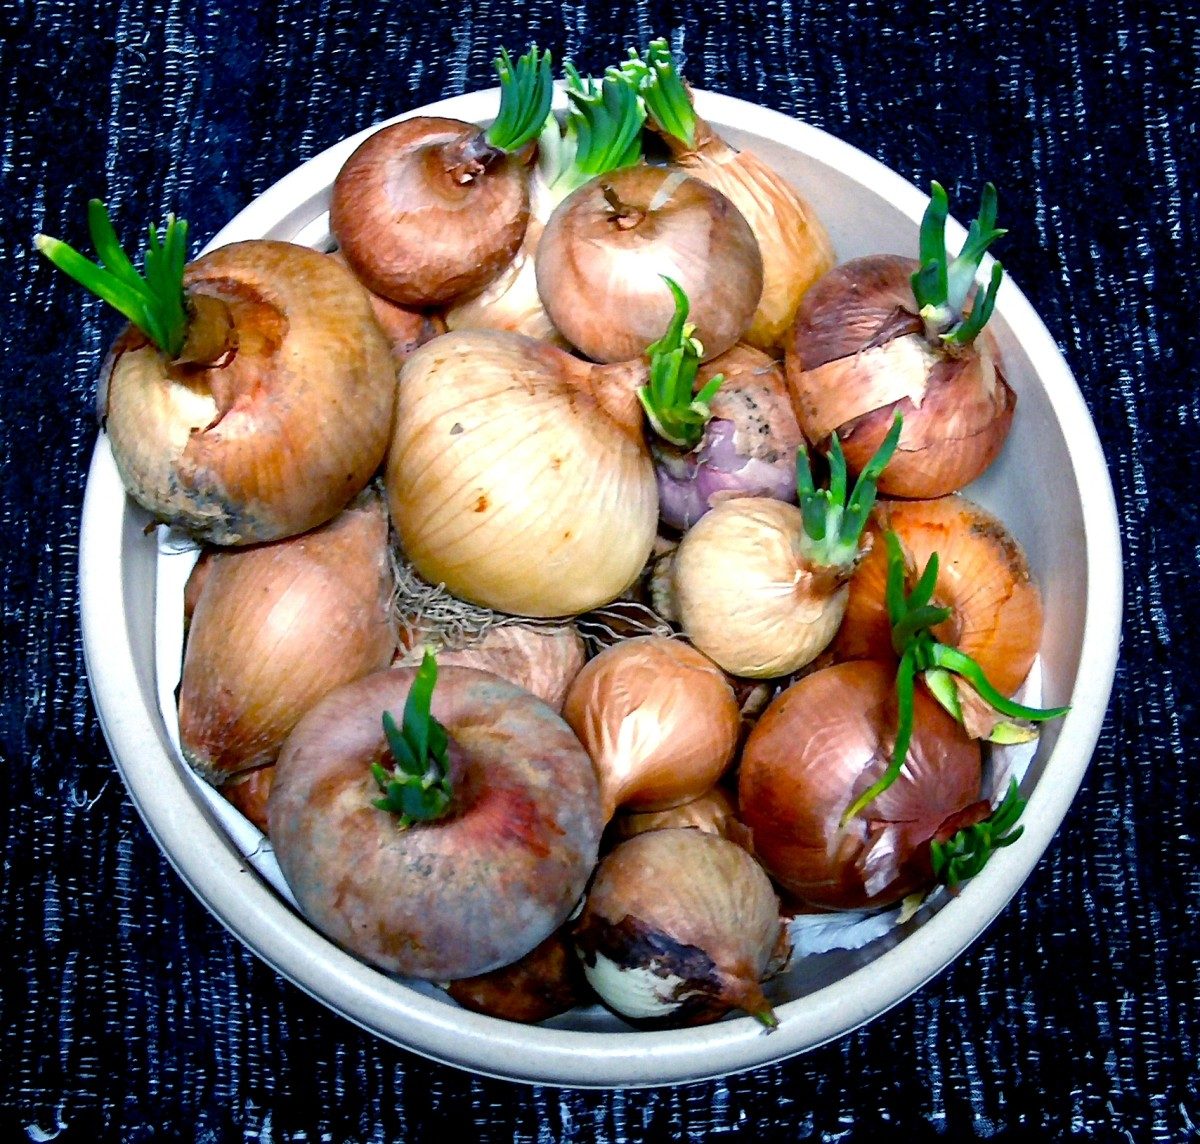 Onions - straight from the garden into the juicer to make a healing onion juice